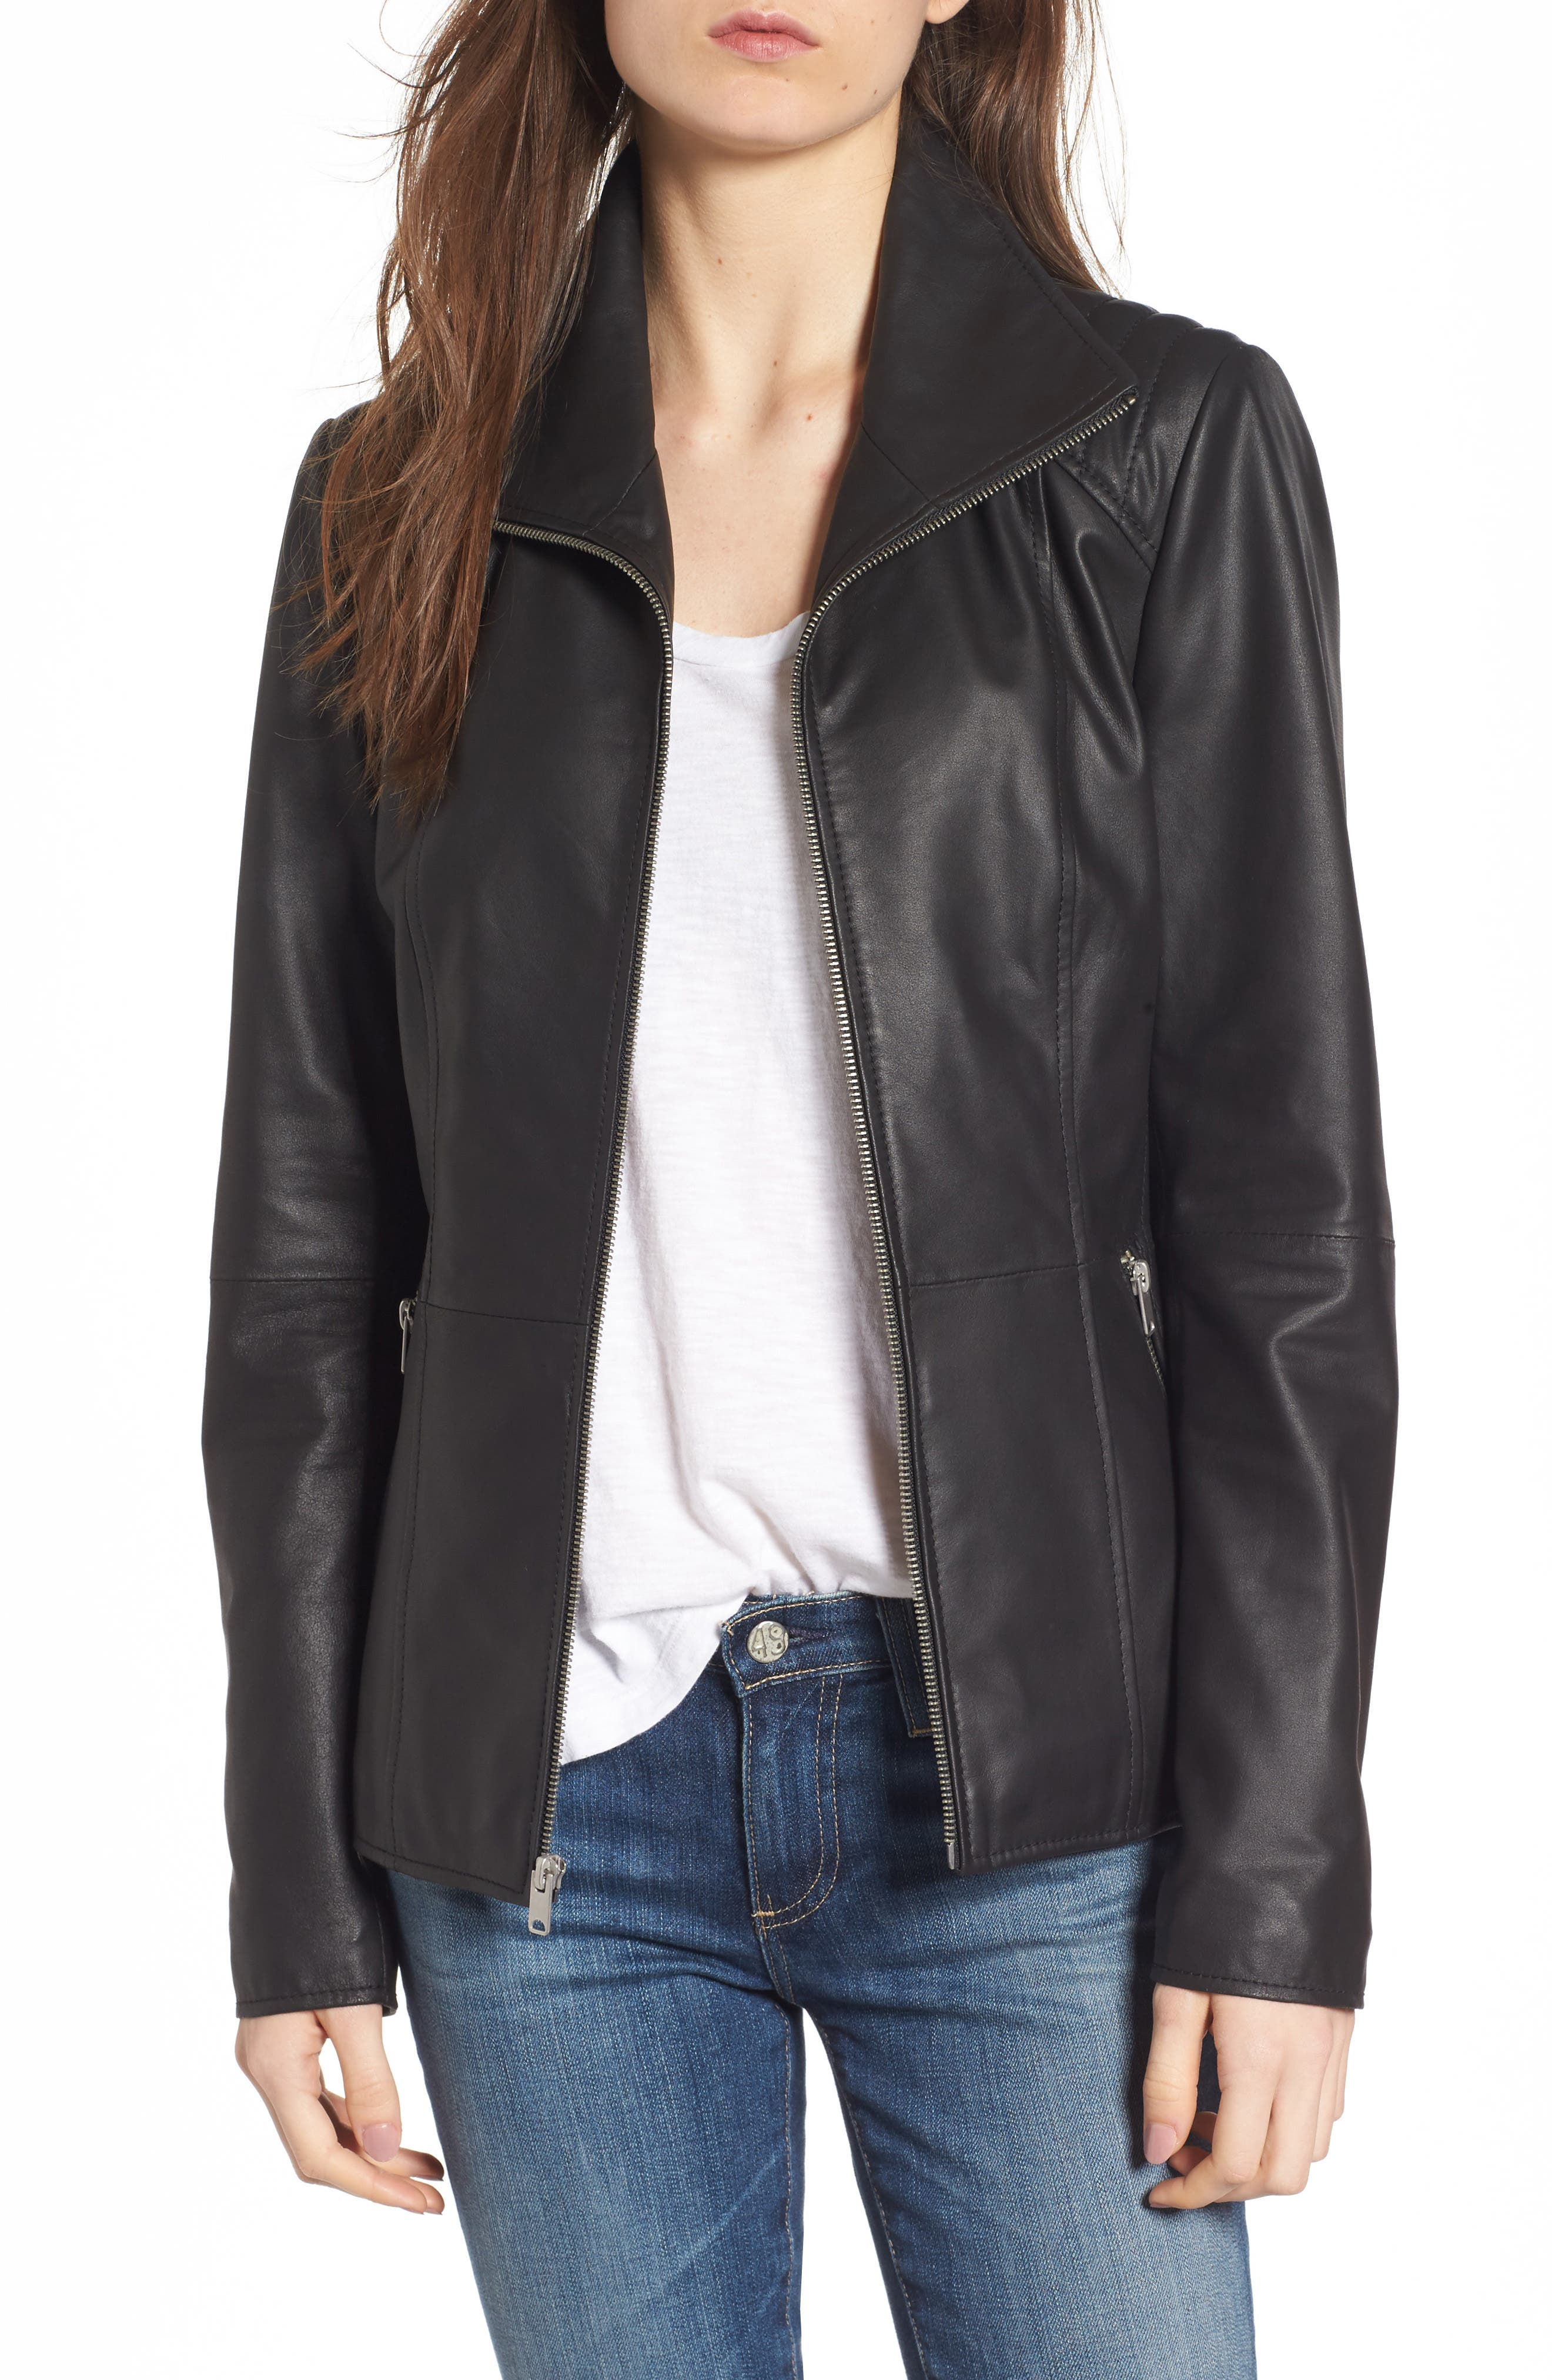 Fabian Feather Leather Jacket,                         Main,                         color,